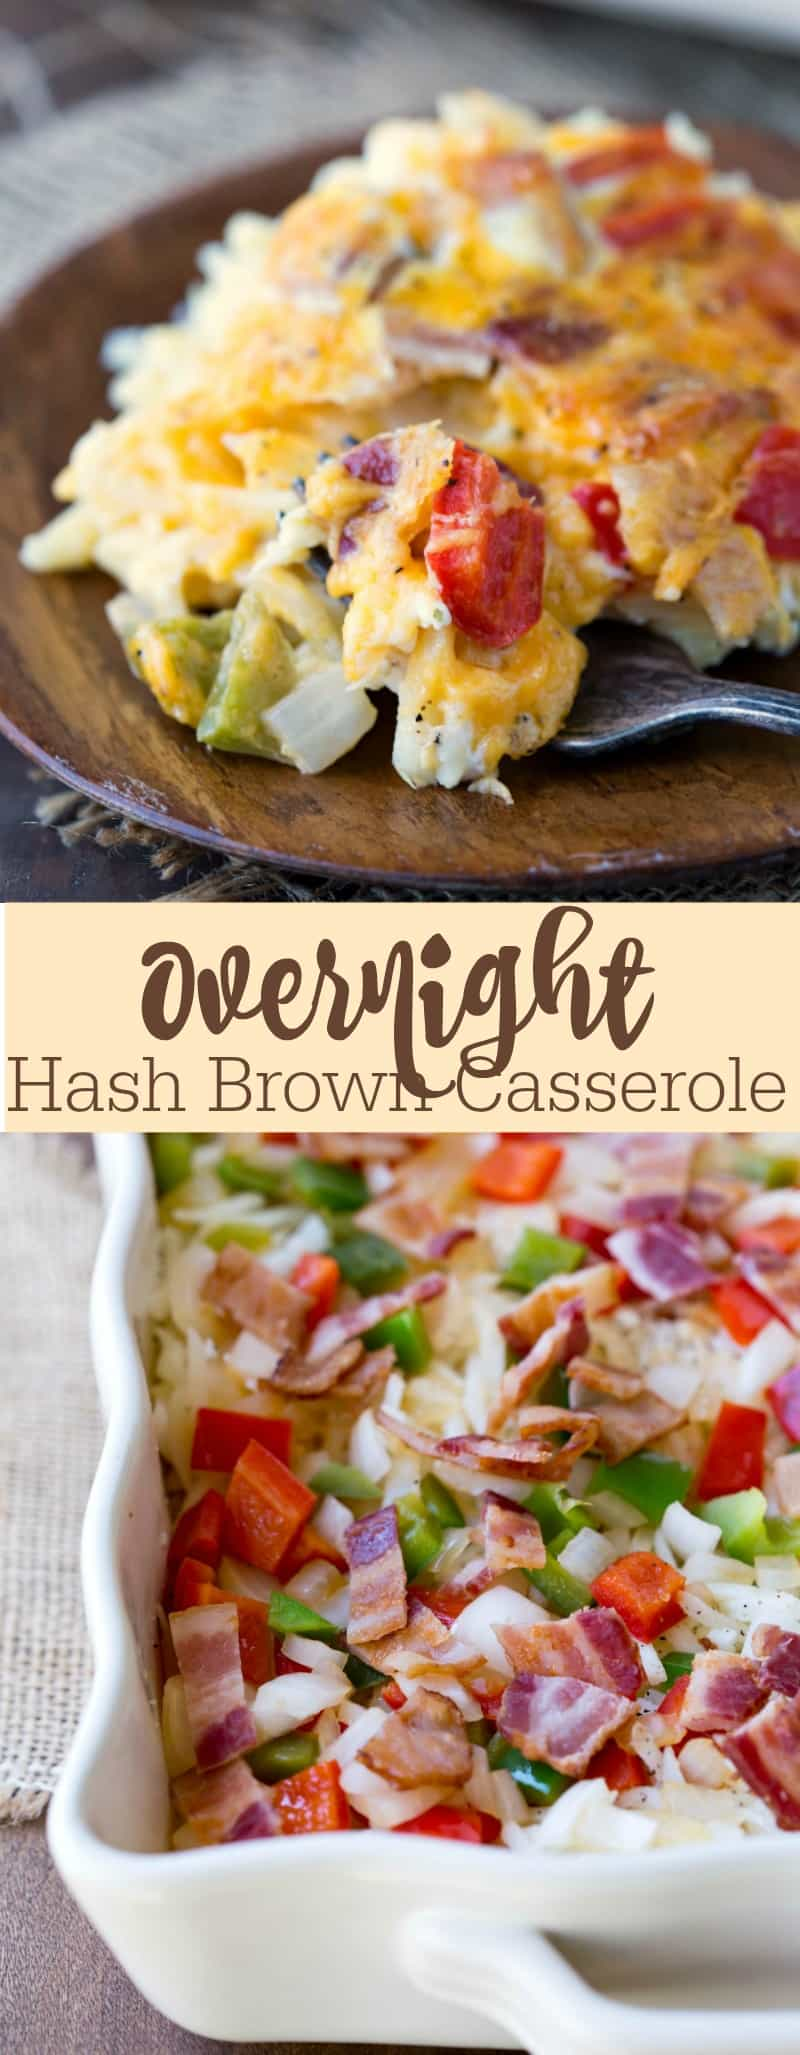 Overnight Hash Brown Casserole Recipe